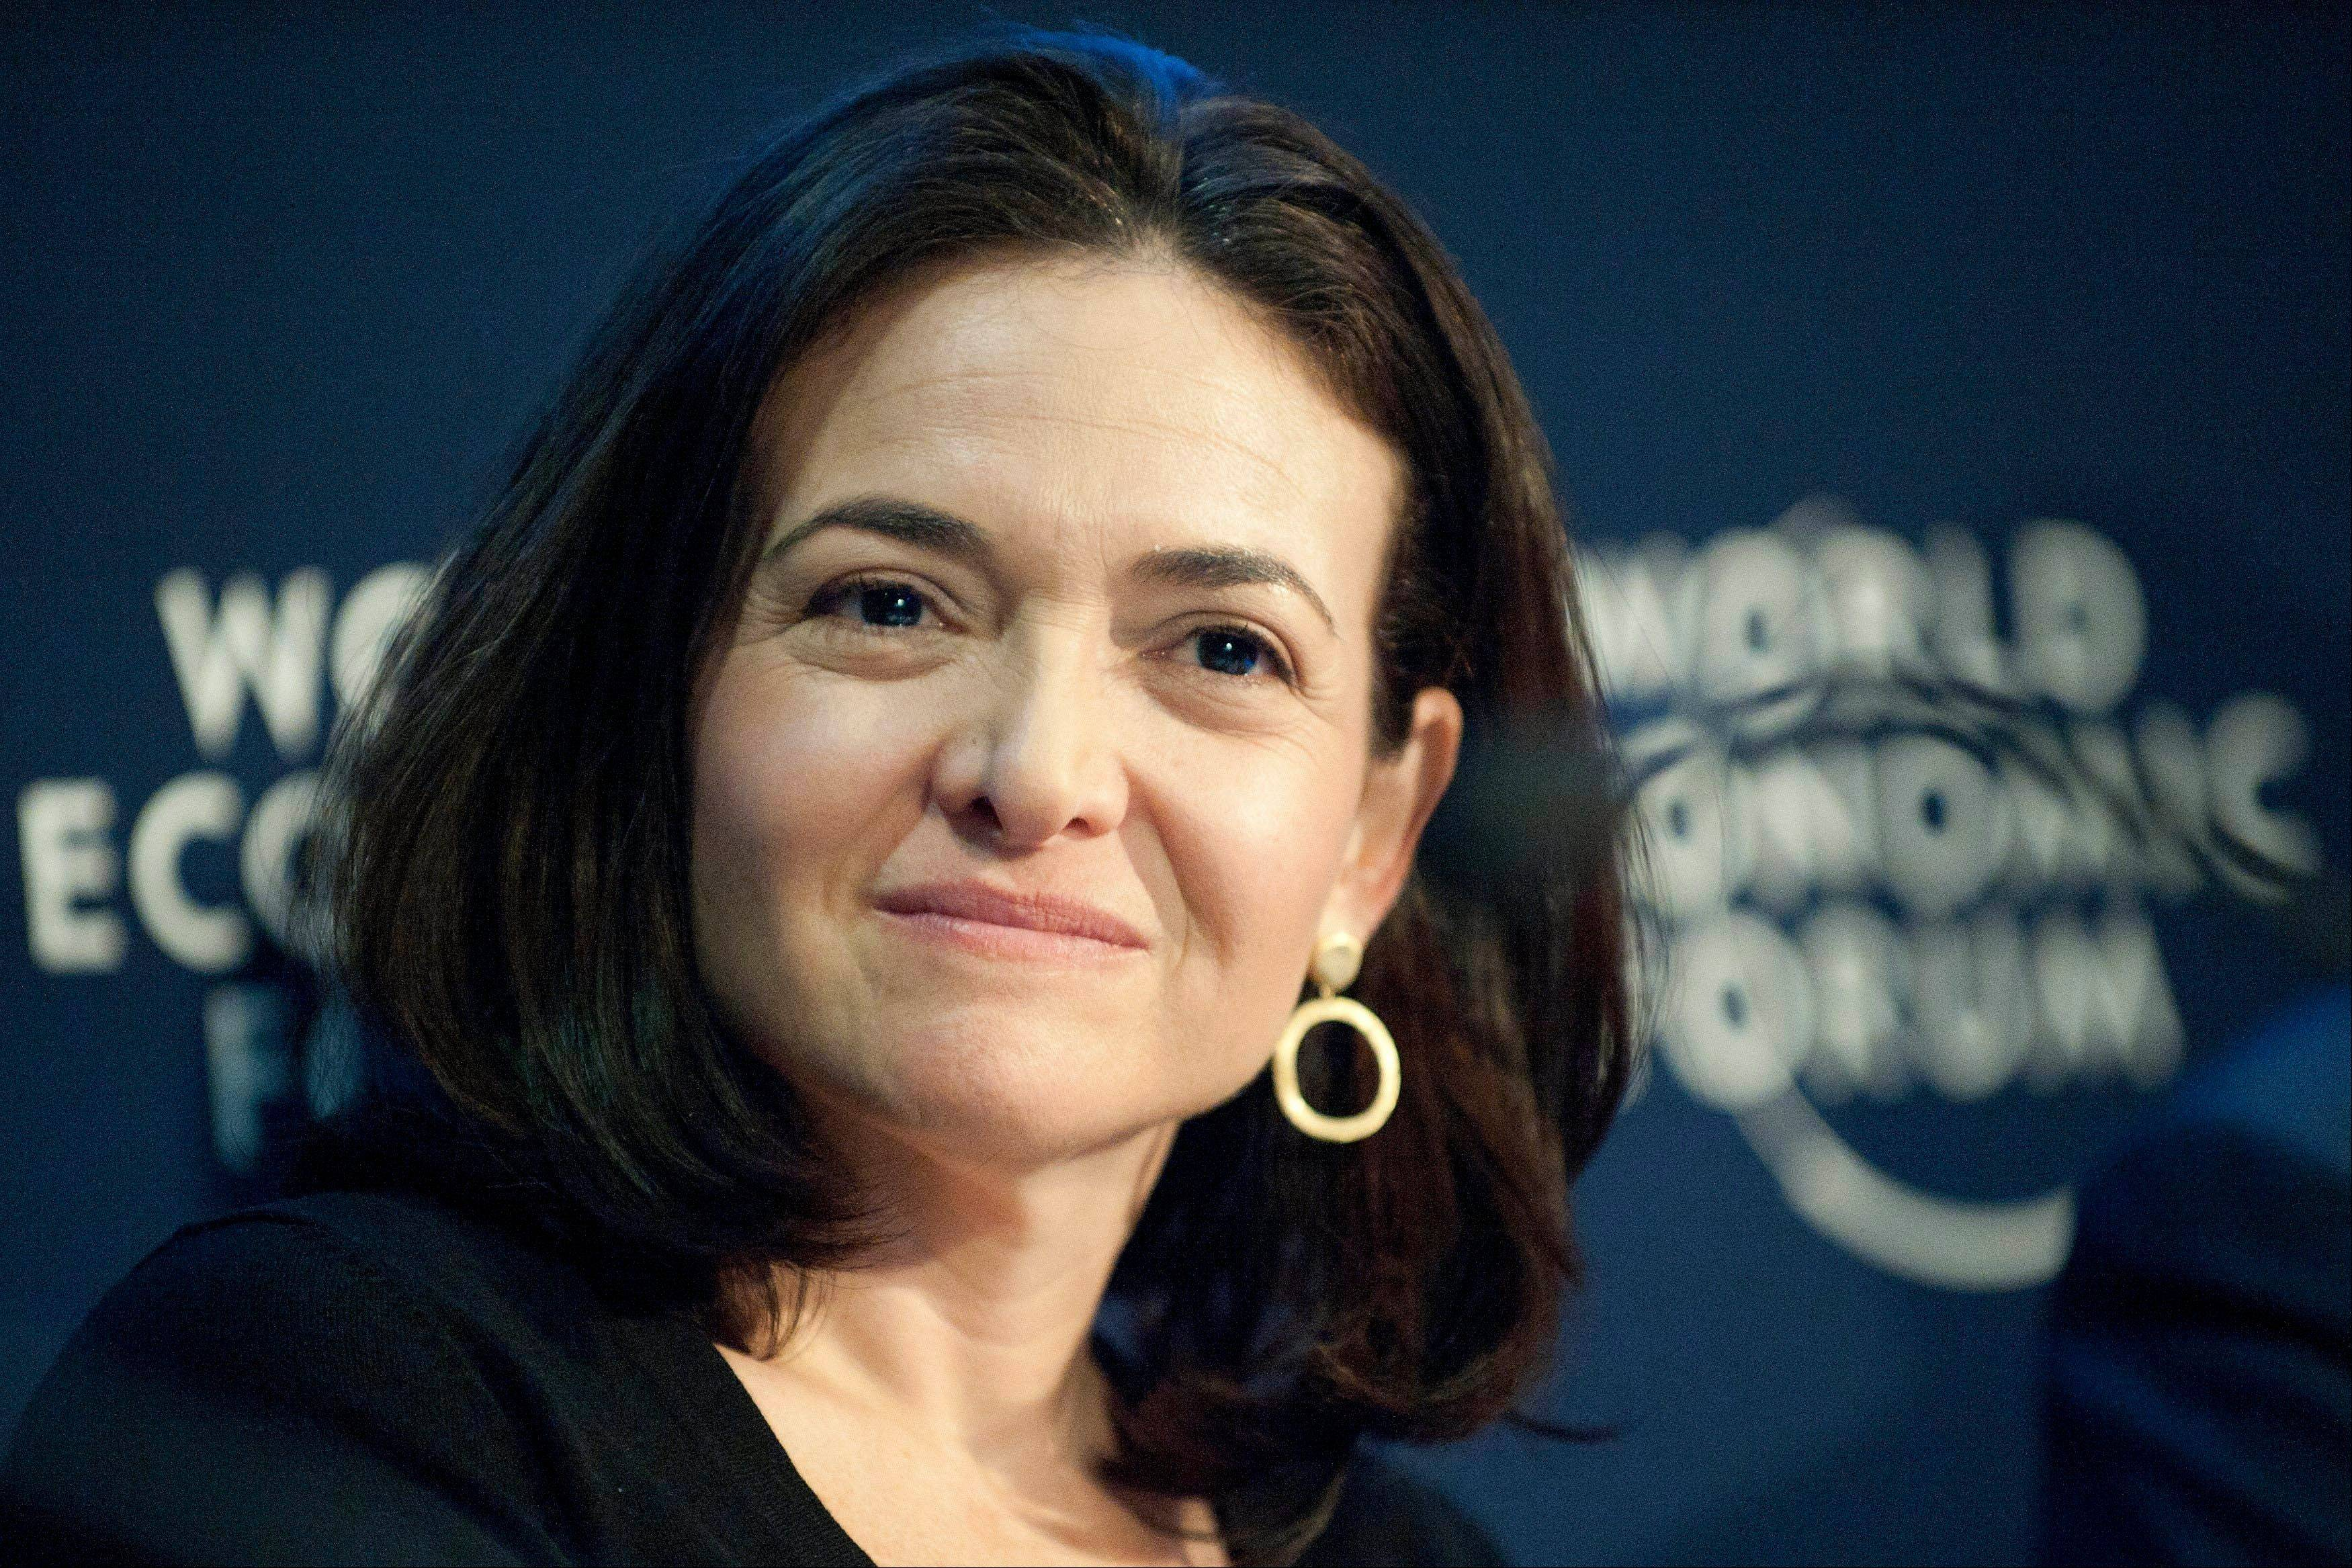 Sheryl Sandberg is chief operating officer of the social network service Facebook. She joined Facebook from Google in 2008, as the first woman on Facebook�s board of directors.